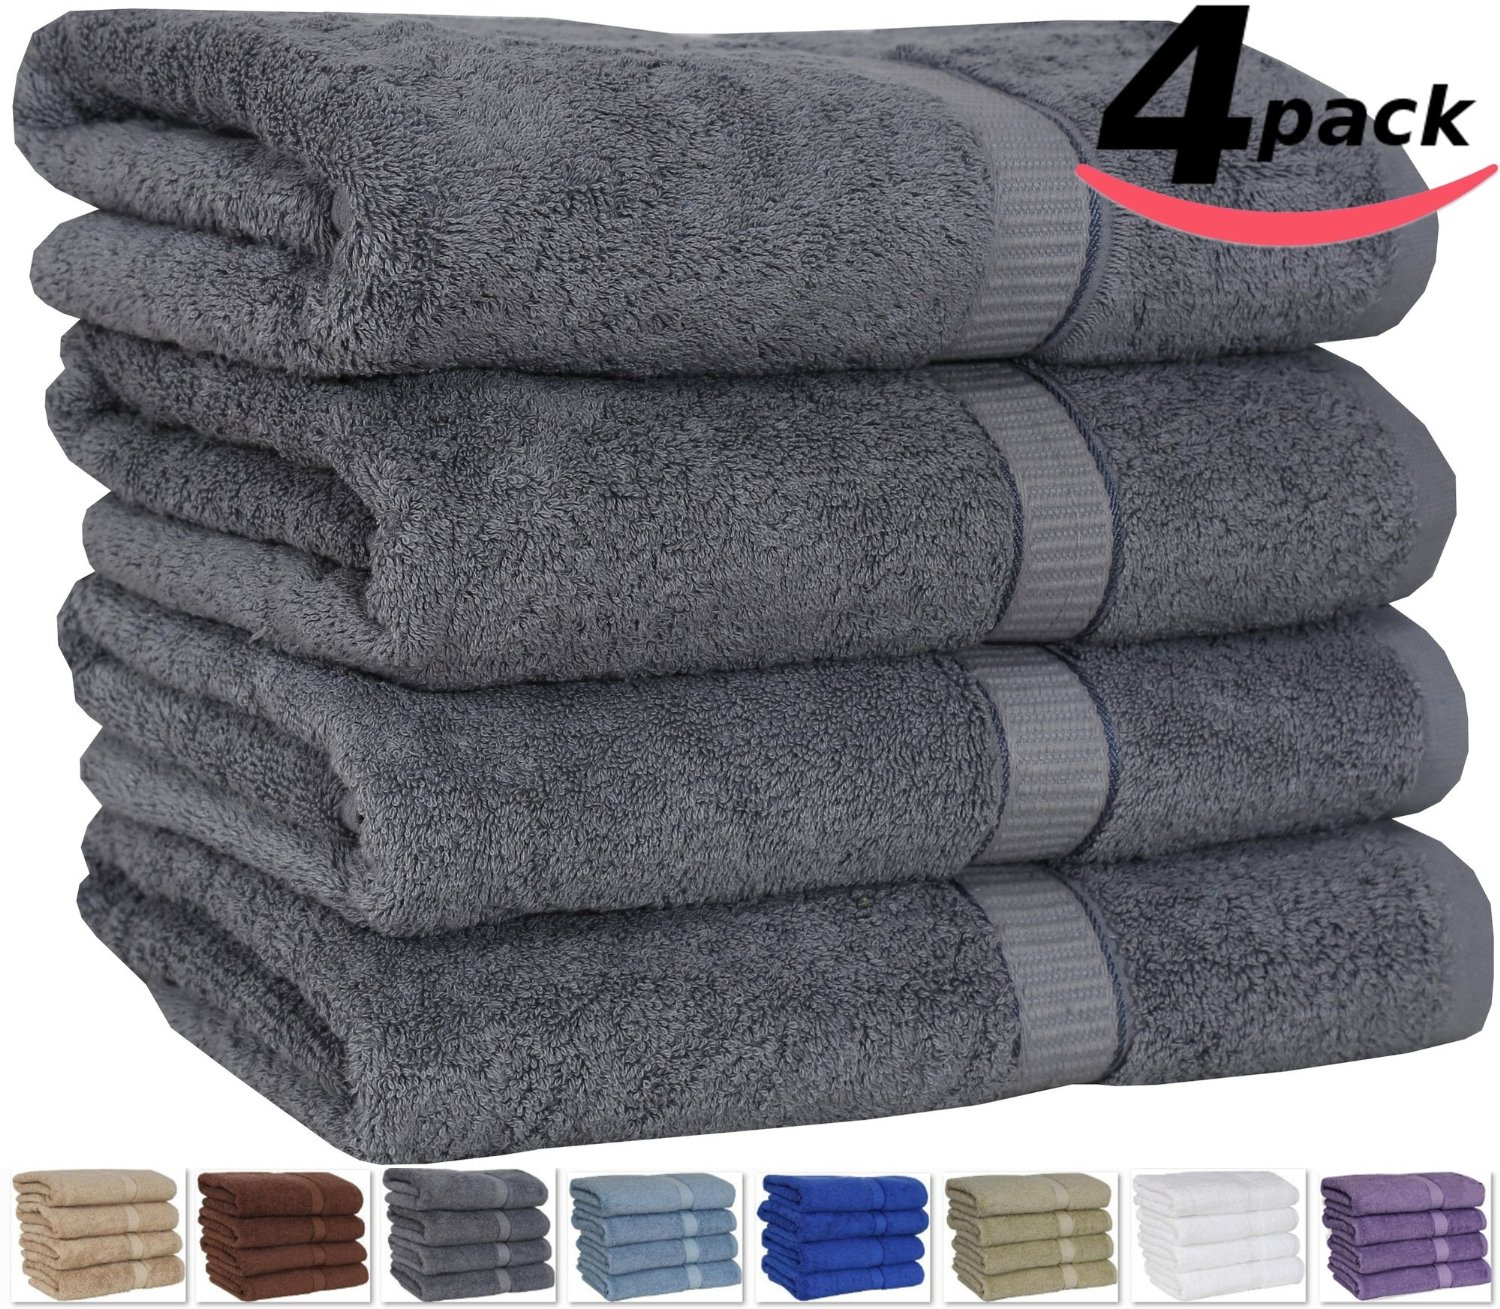 Utopia 100% Cotton Bath Towels, Easy Care, Ringspun Cotton for Maximum Softness and Absorbency, 4-Pack – Gray (26″ x 52″) review